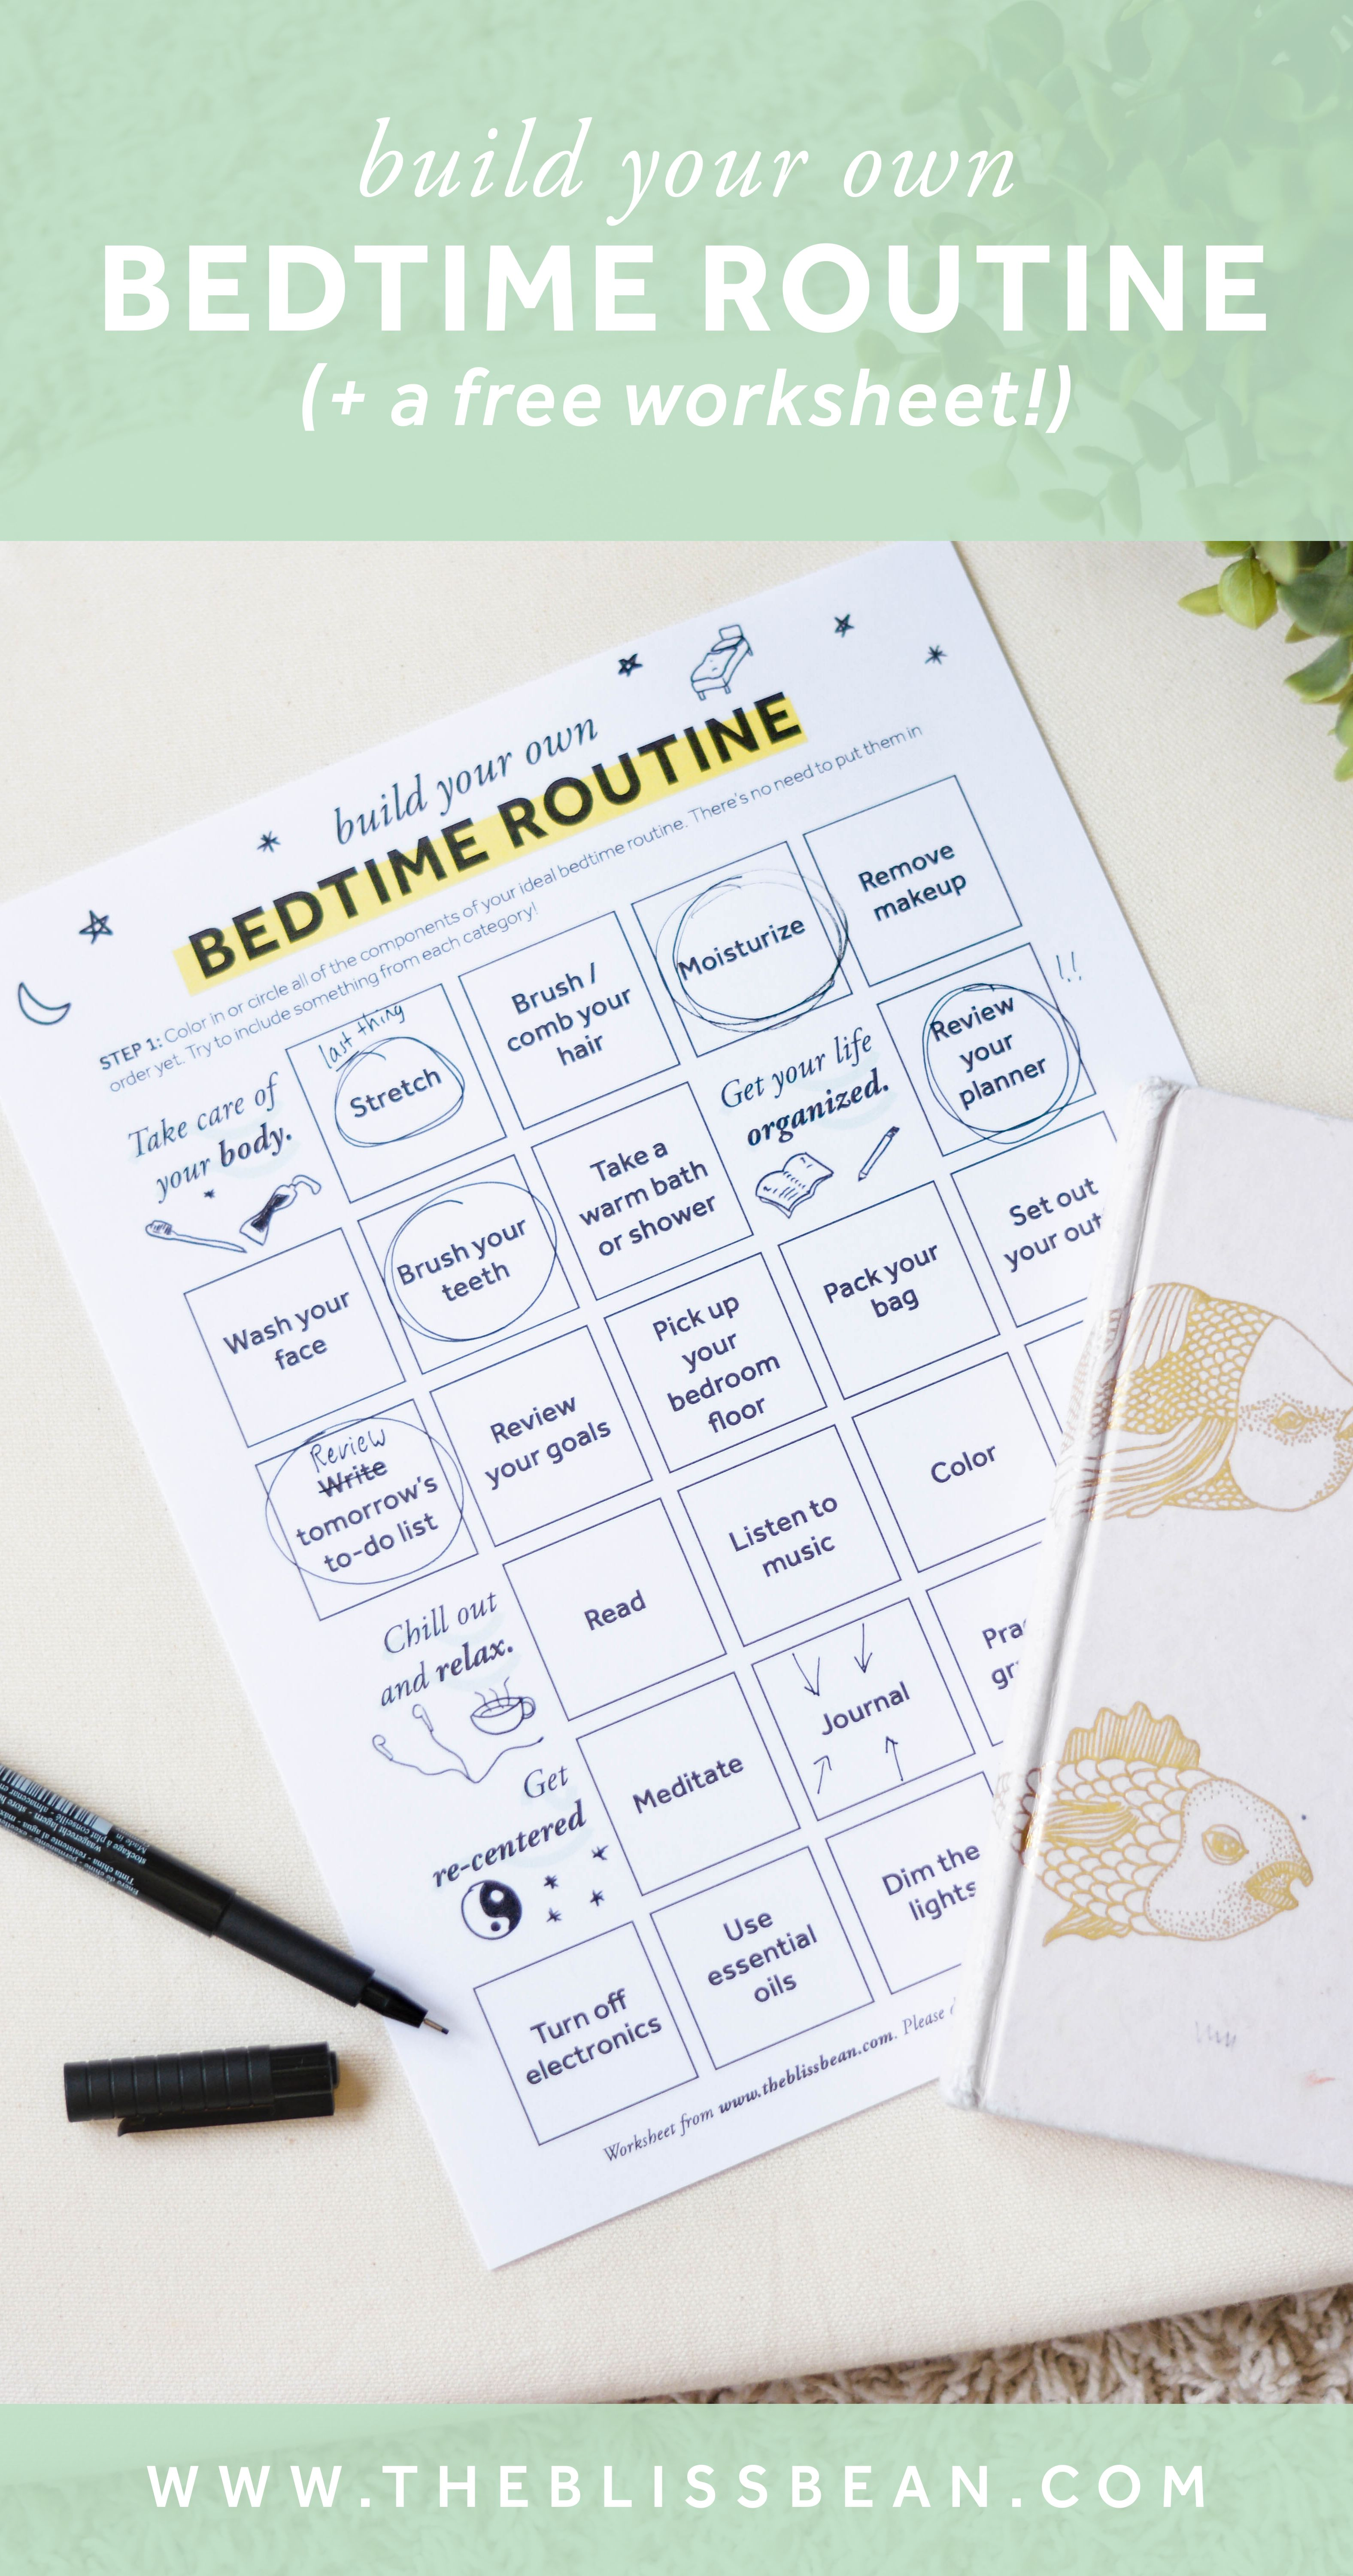 Build Your Own Bedtime Routine A Free Worksheet